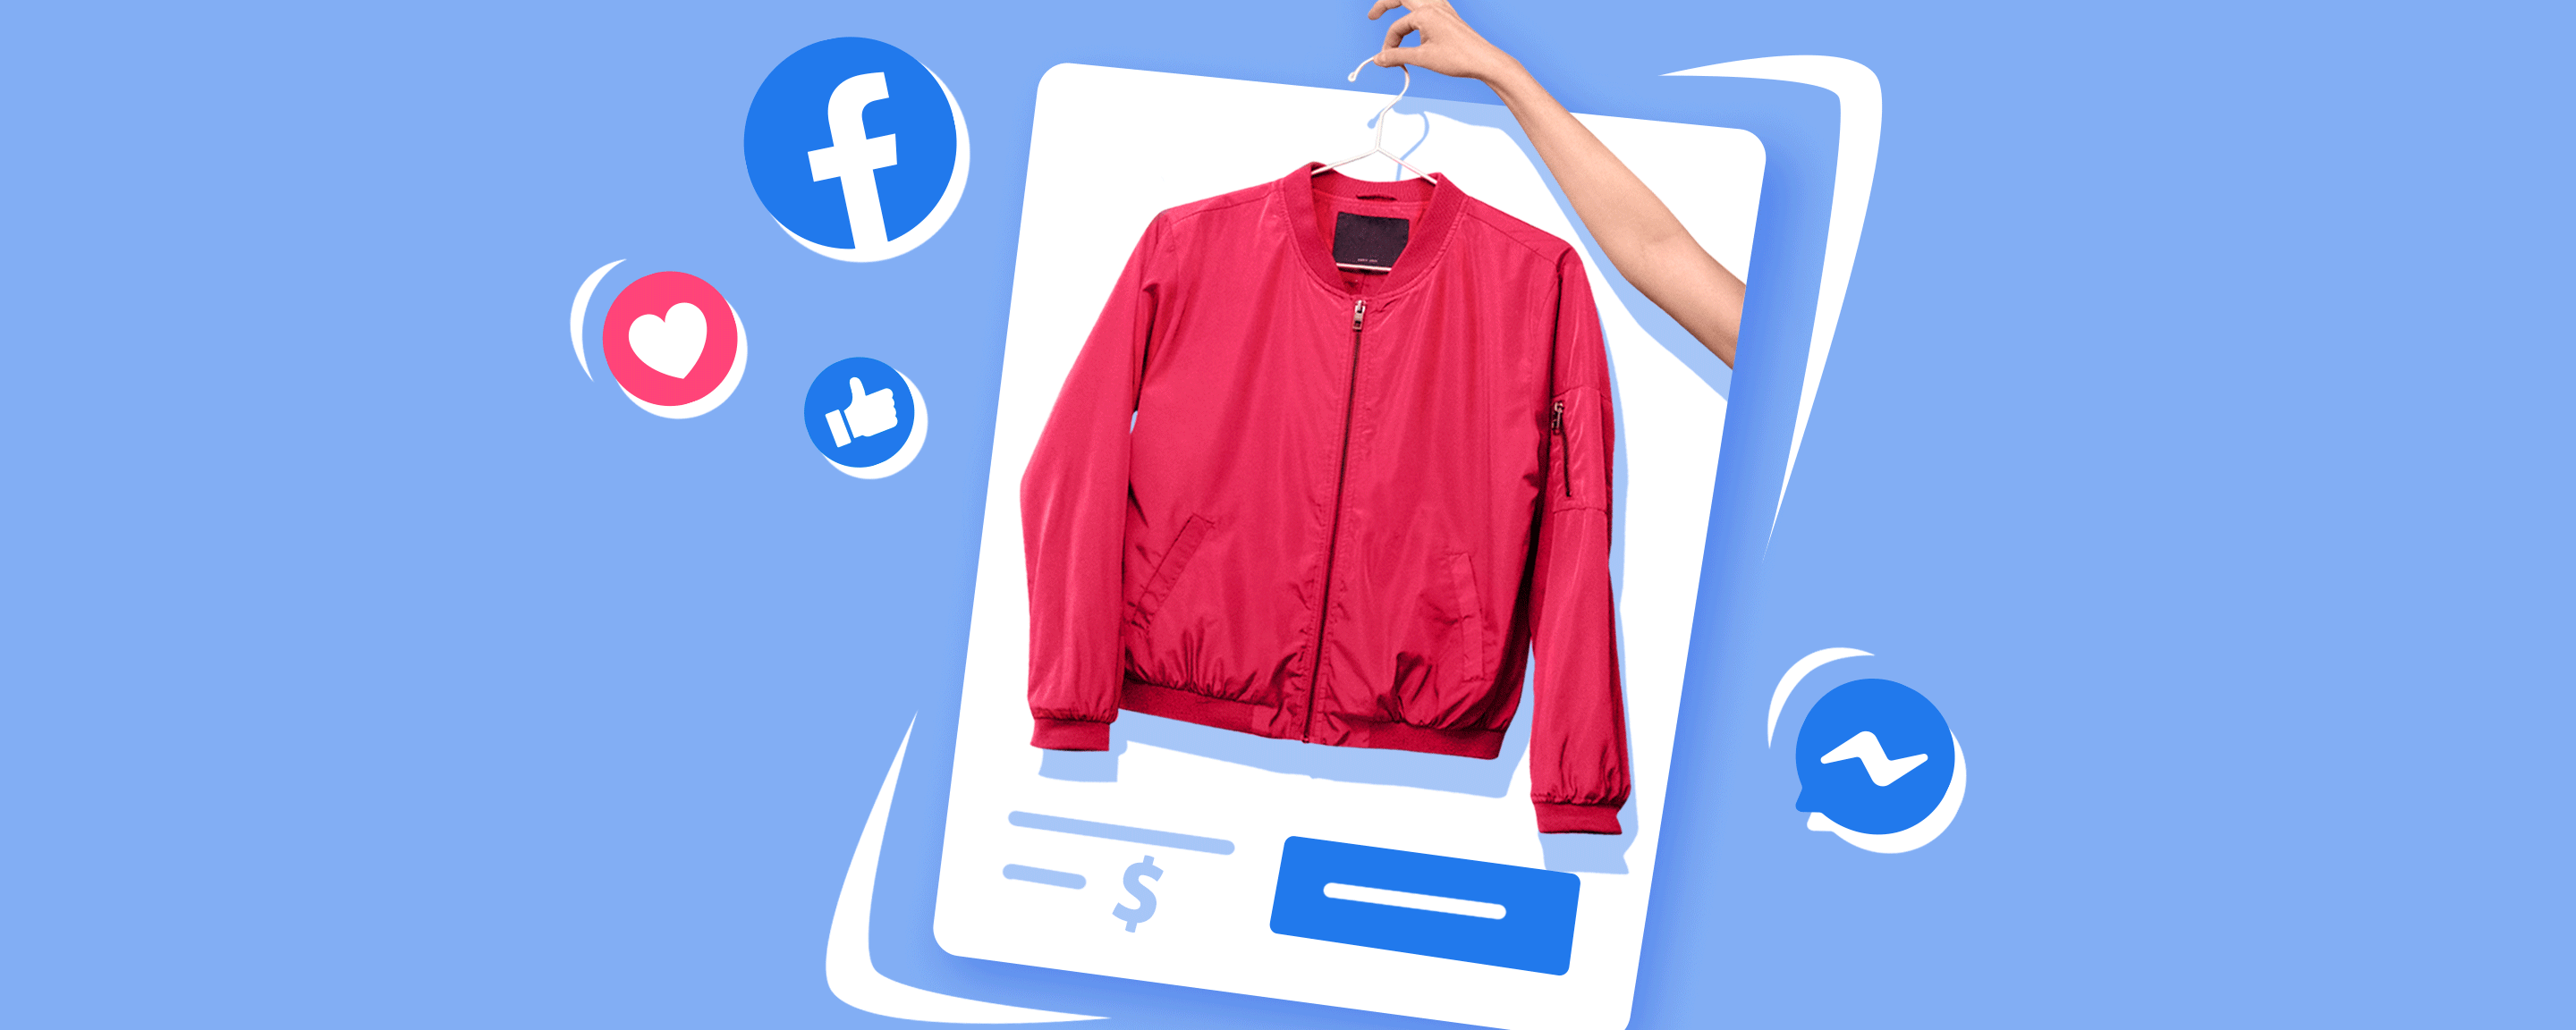 How to Sell Clothes on Facebook